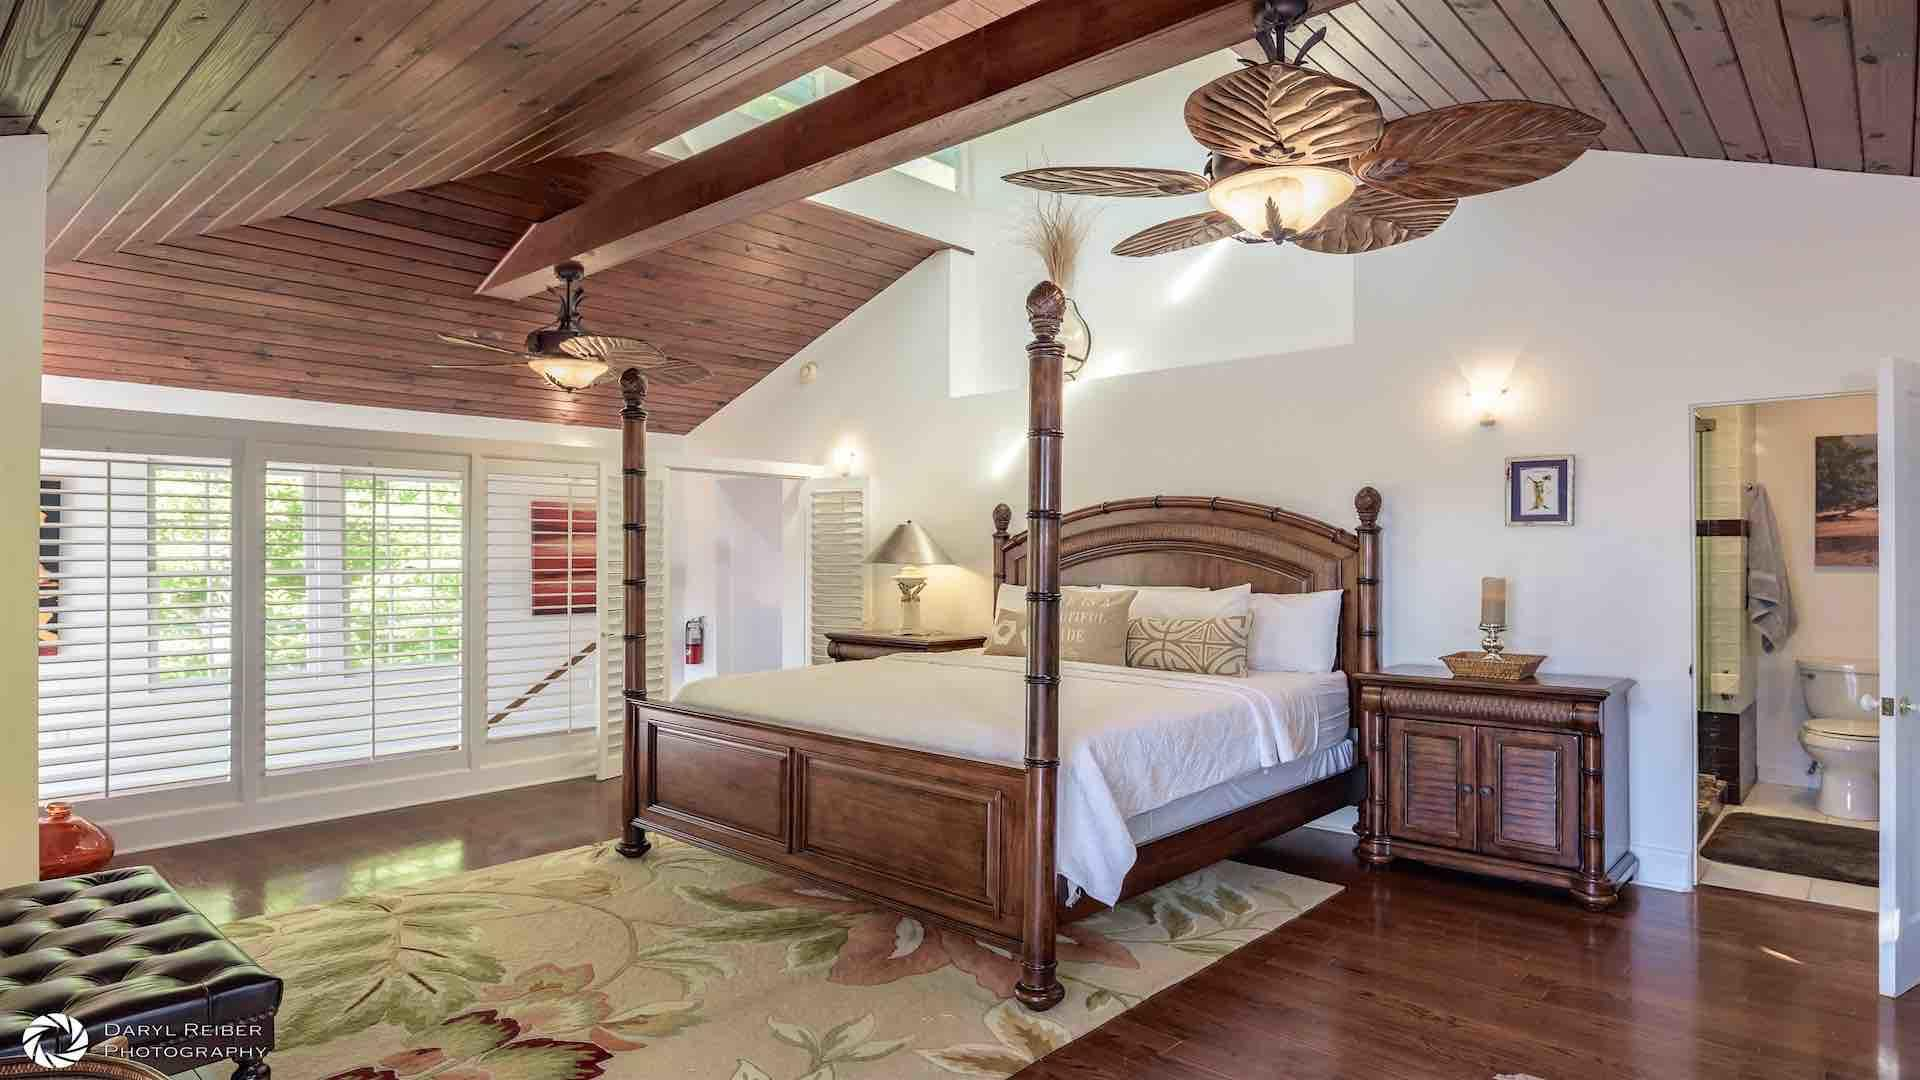 The master bedroom has a King bed...